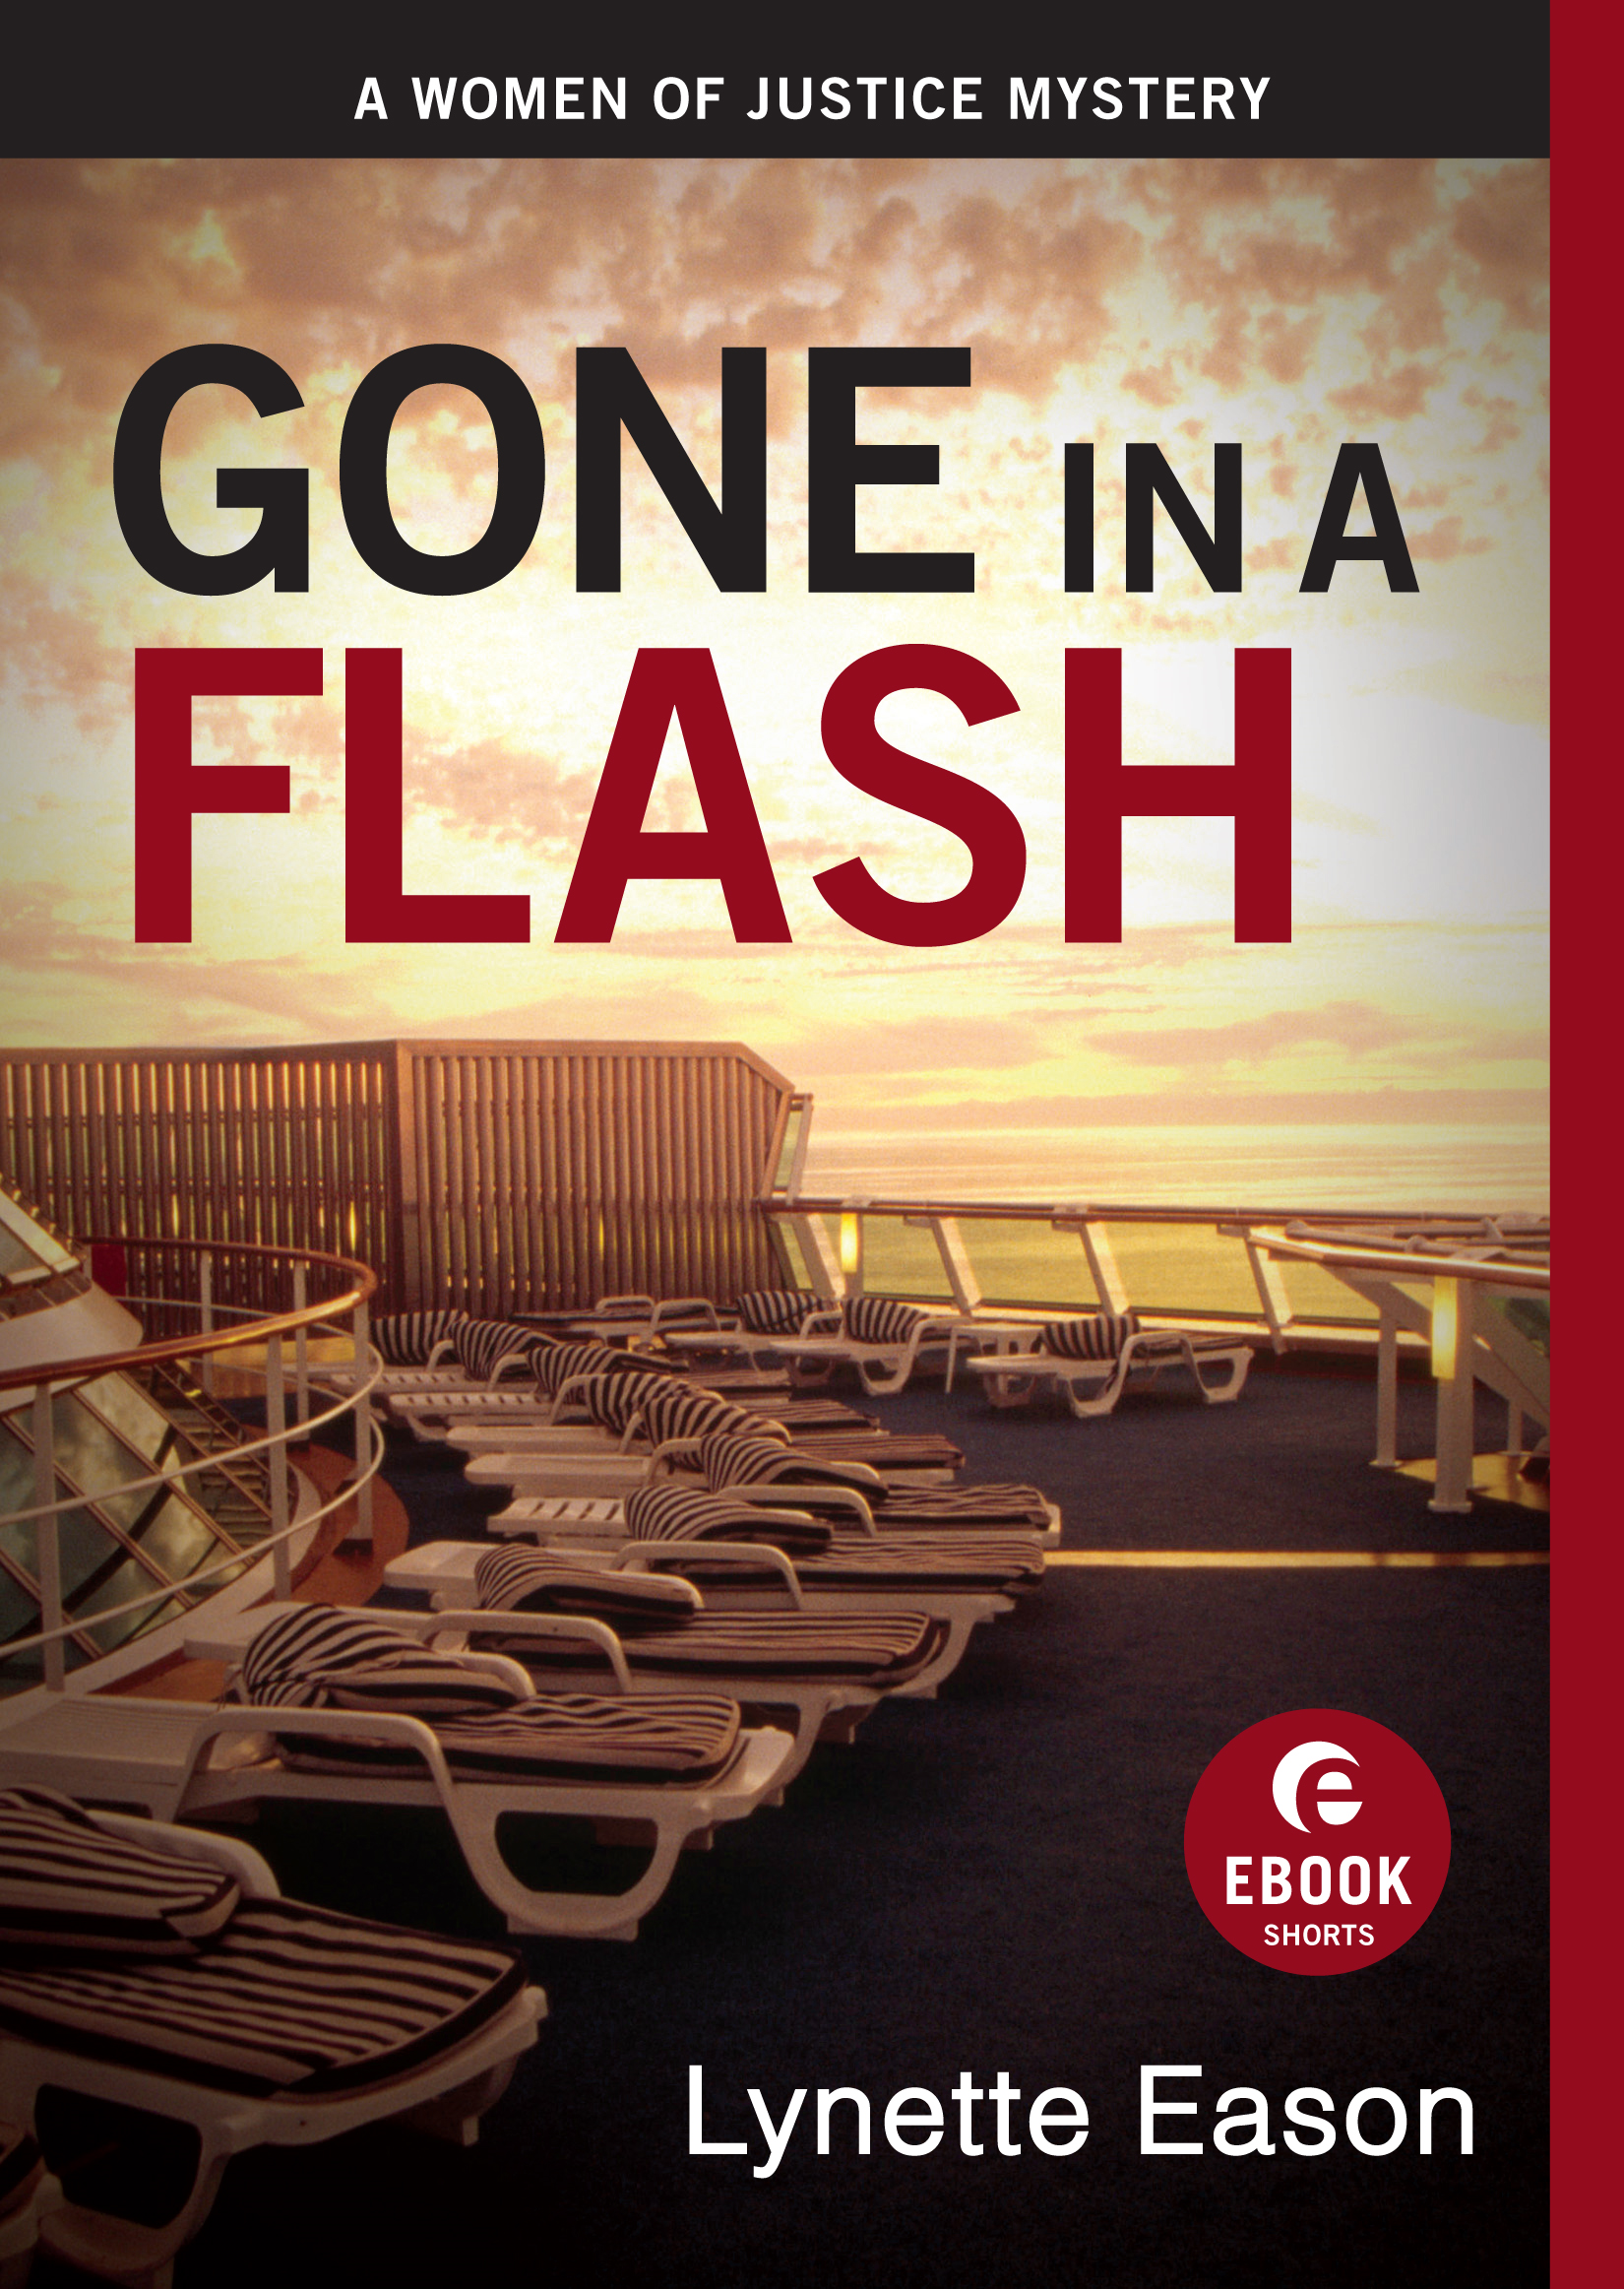 Gone in a Flash (Ebook Shorts) By: Lynette Eason